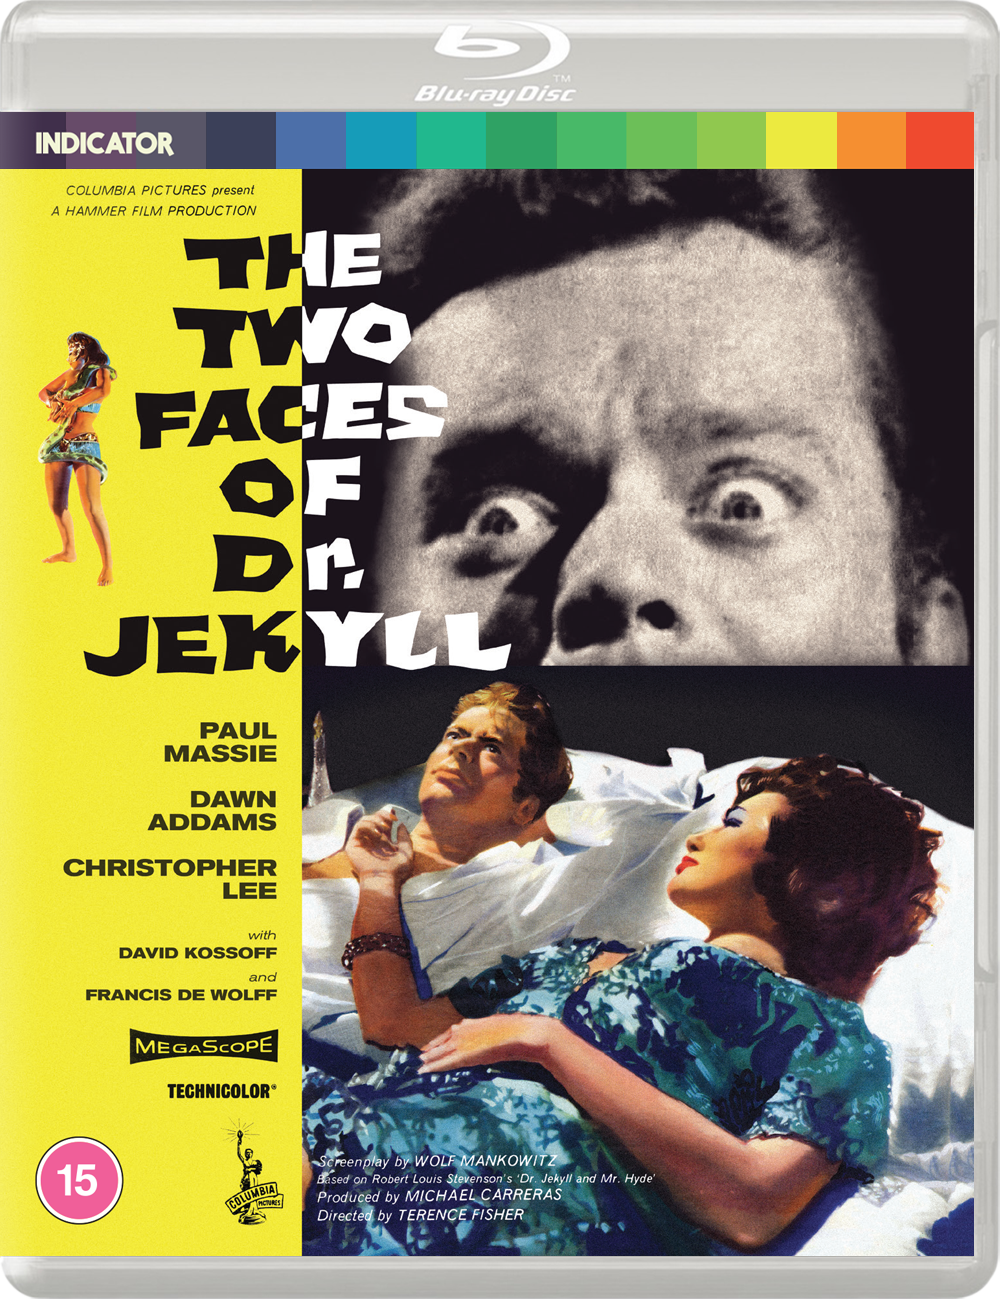 THE TWO FACES OF DR. JEKYLL - BD